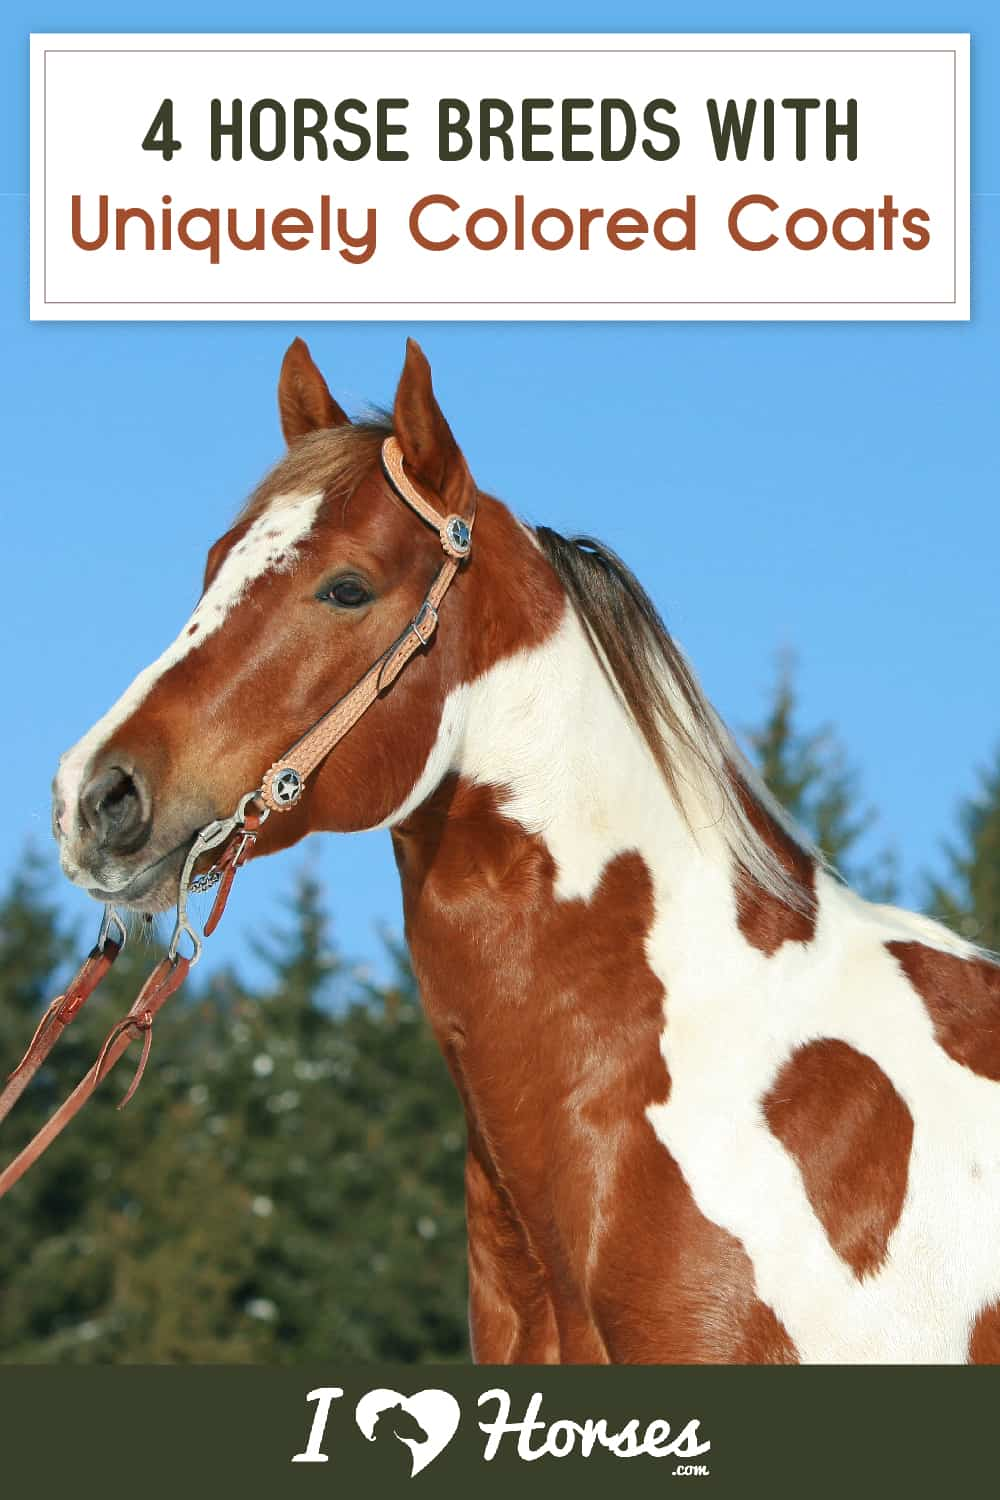 4 Horse Breeds With Uniquely Colored Coats